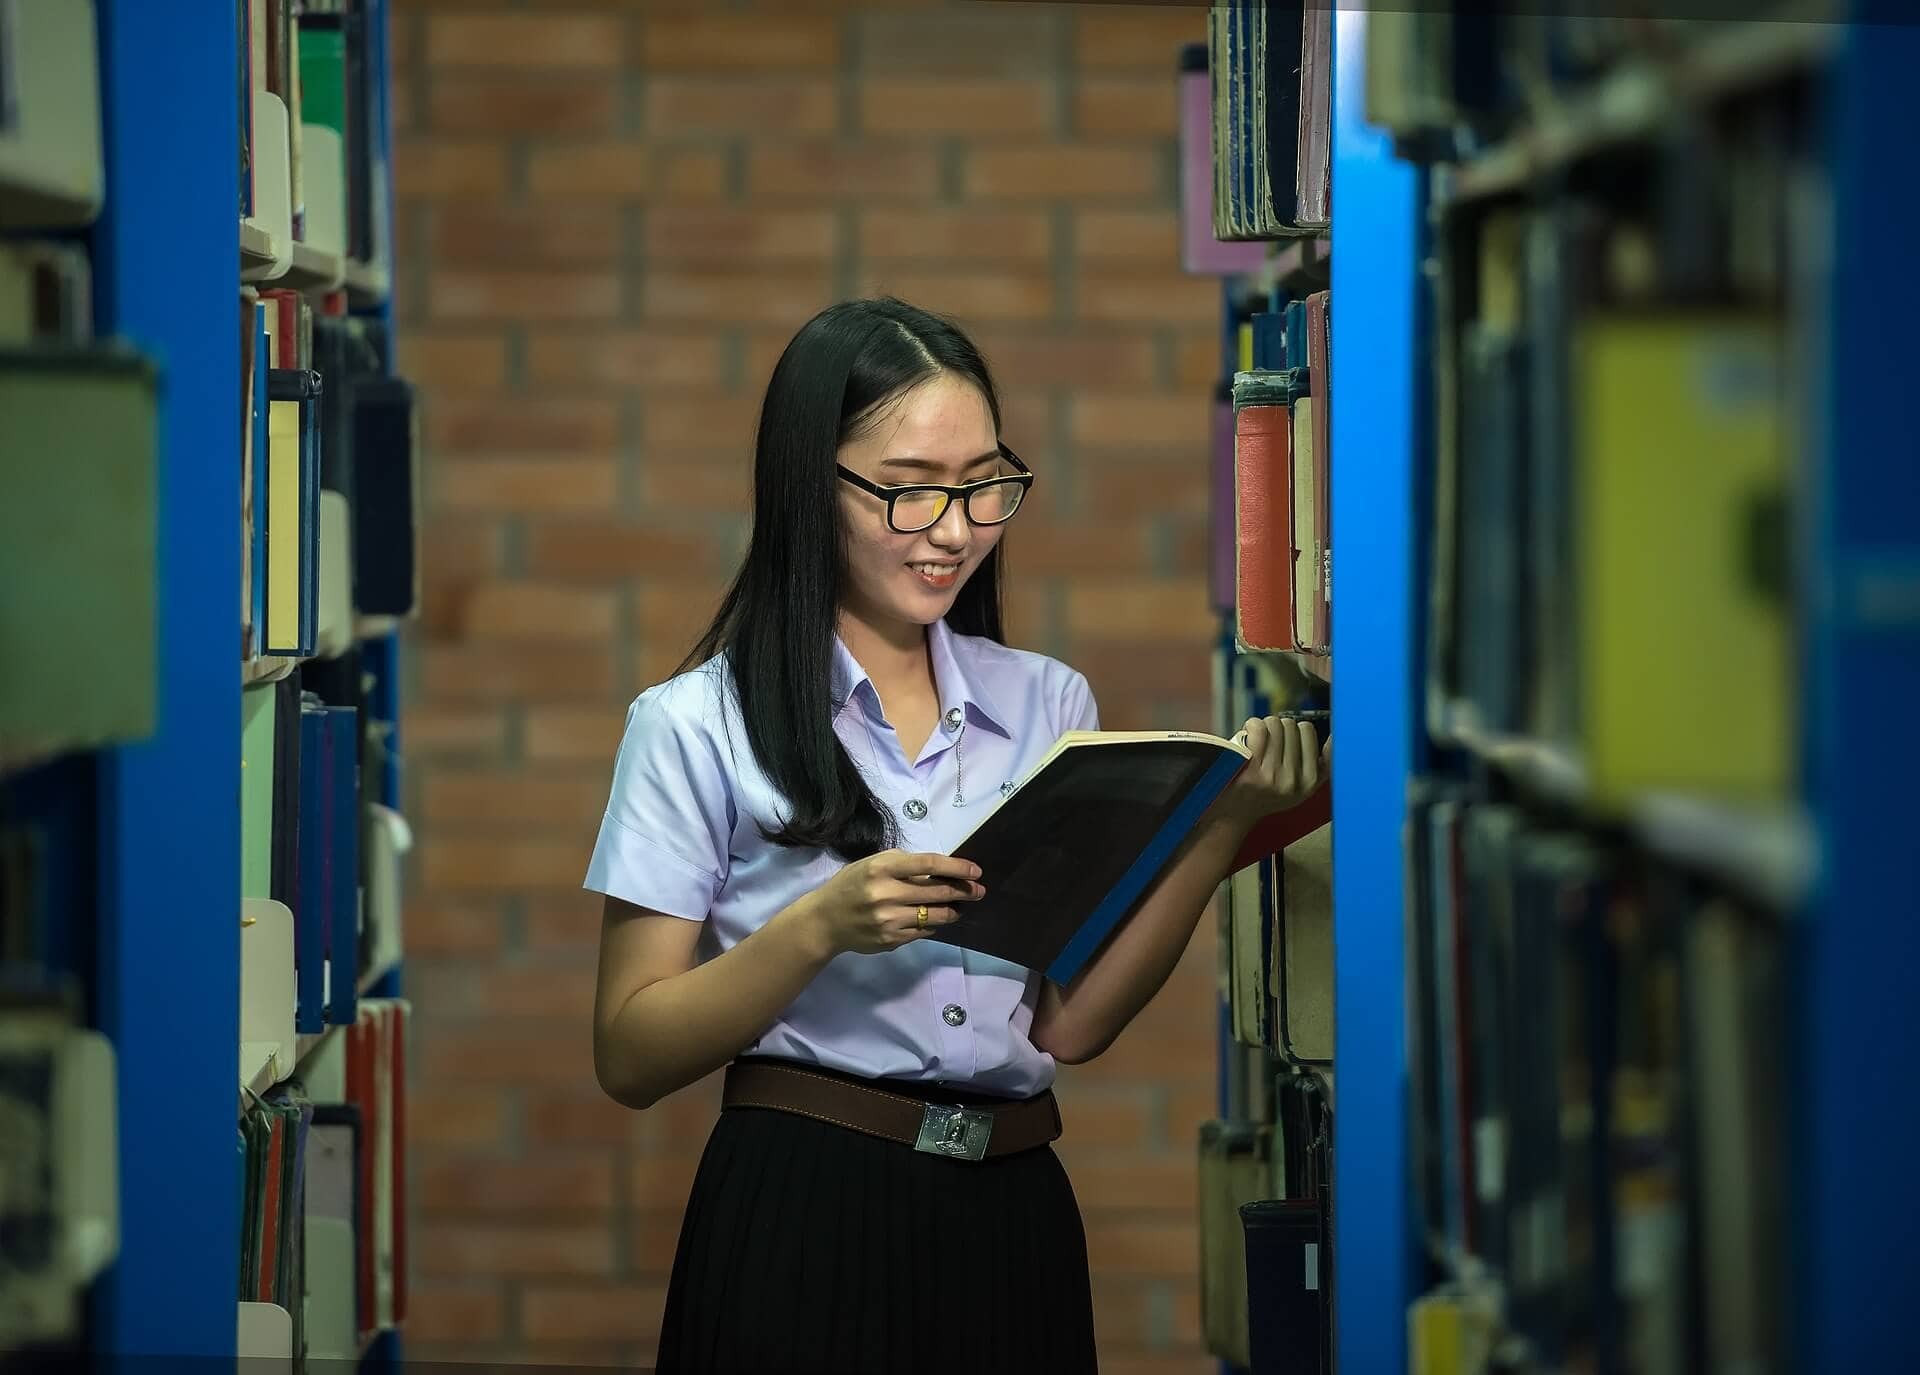 Choosing A College: Community Colleges